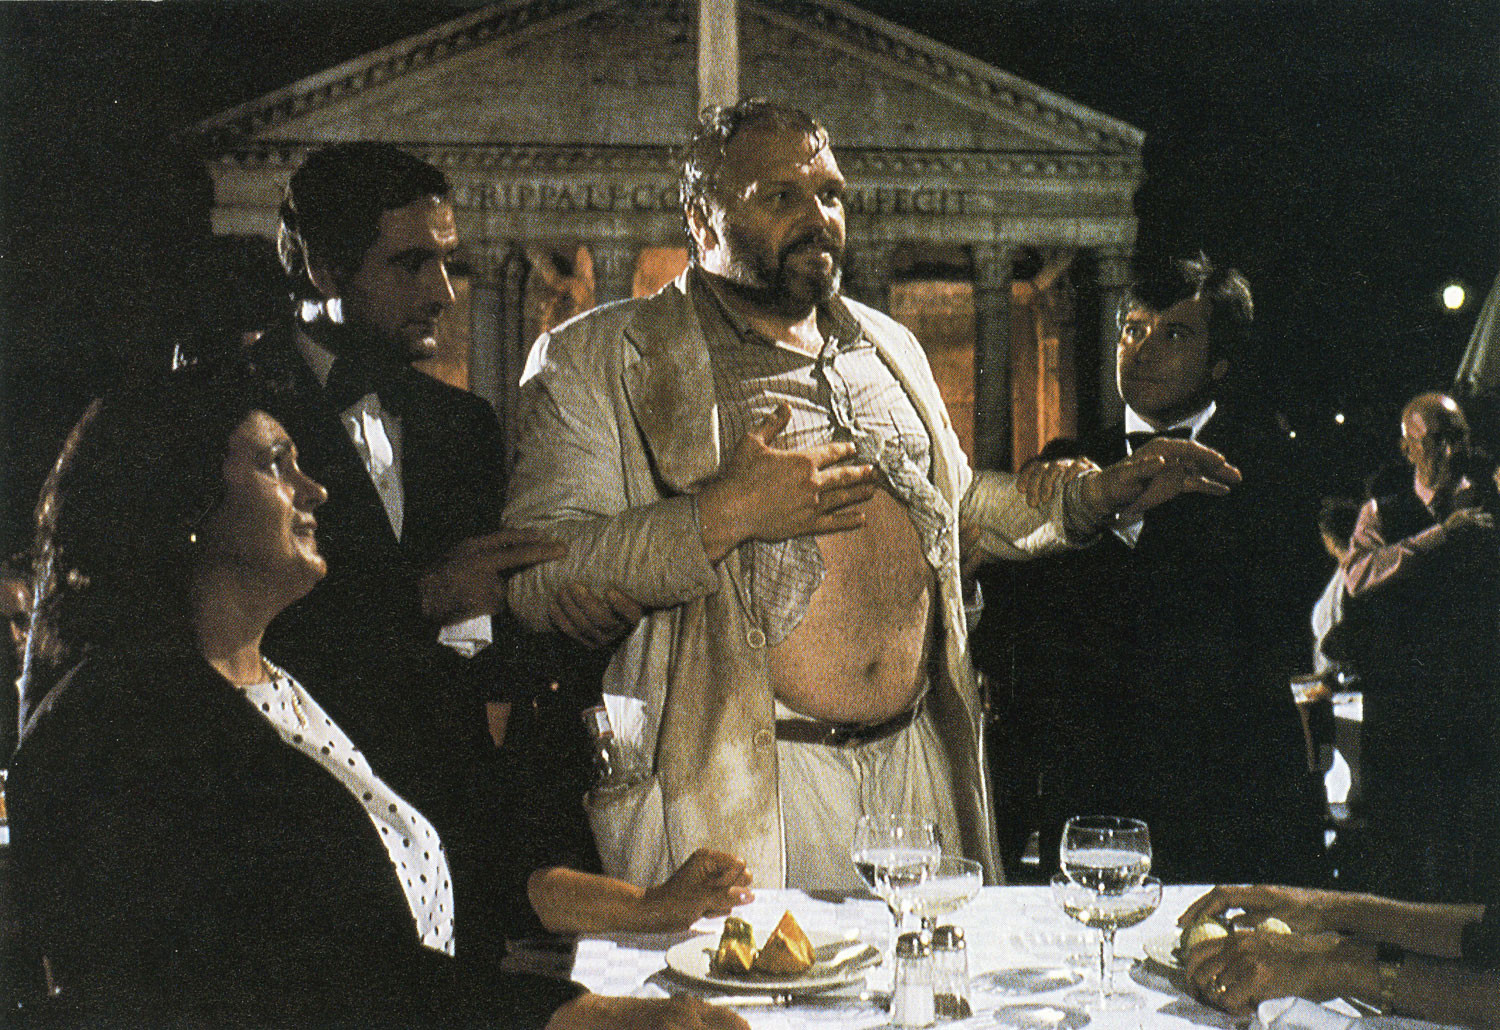 thumb-Peter-Greenaway-The-Belly-of-an-Architect-.-1987--Peter-Greenaway-.-The-Belly-of-an-Architect-.-1987.jpg